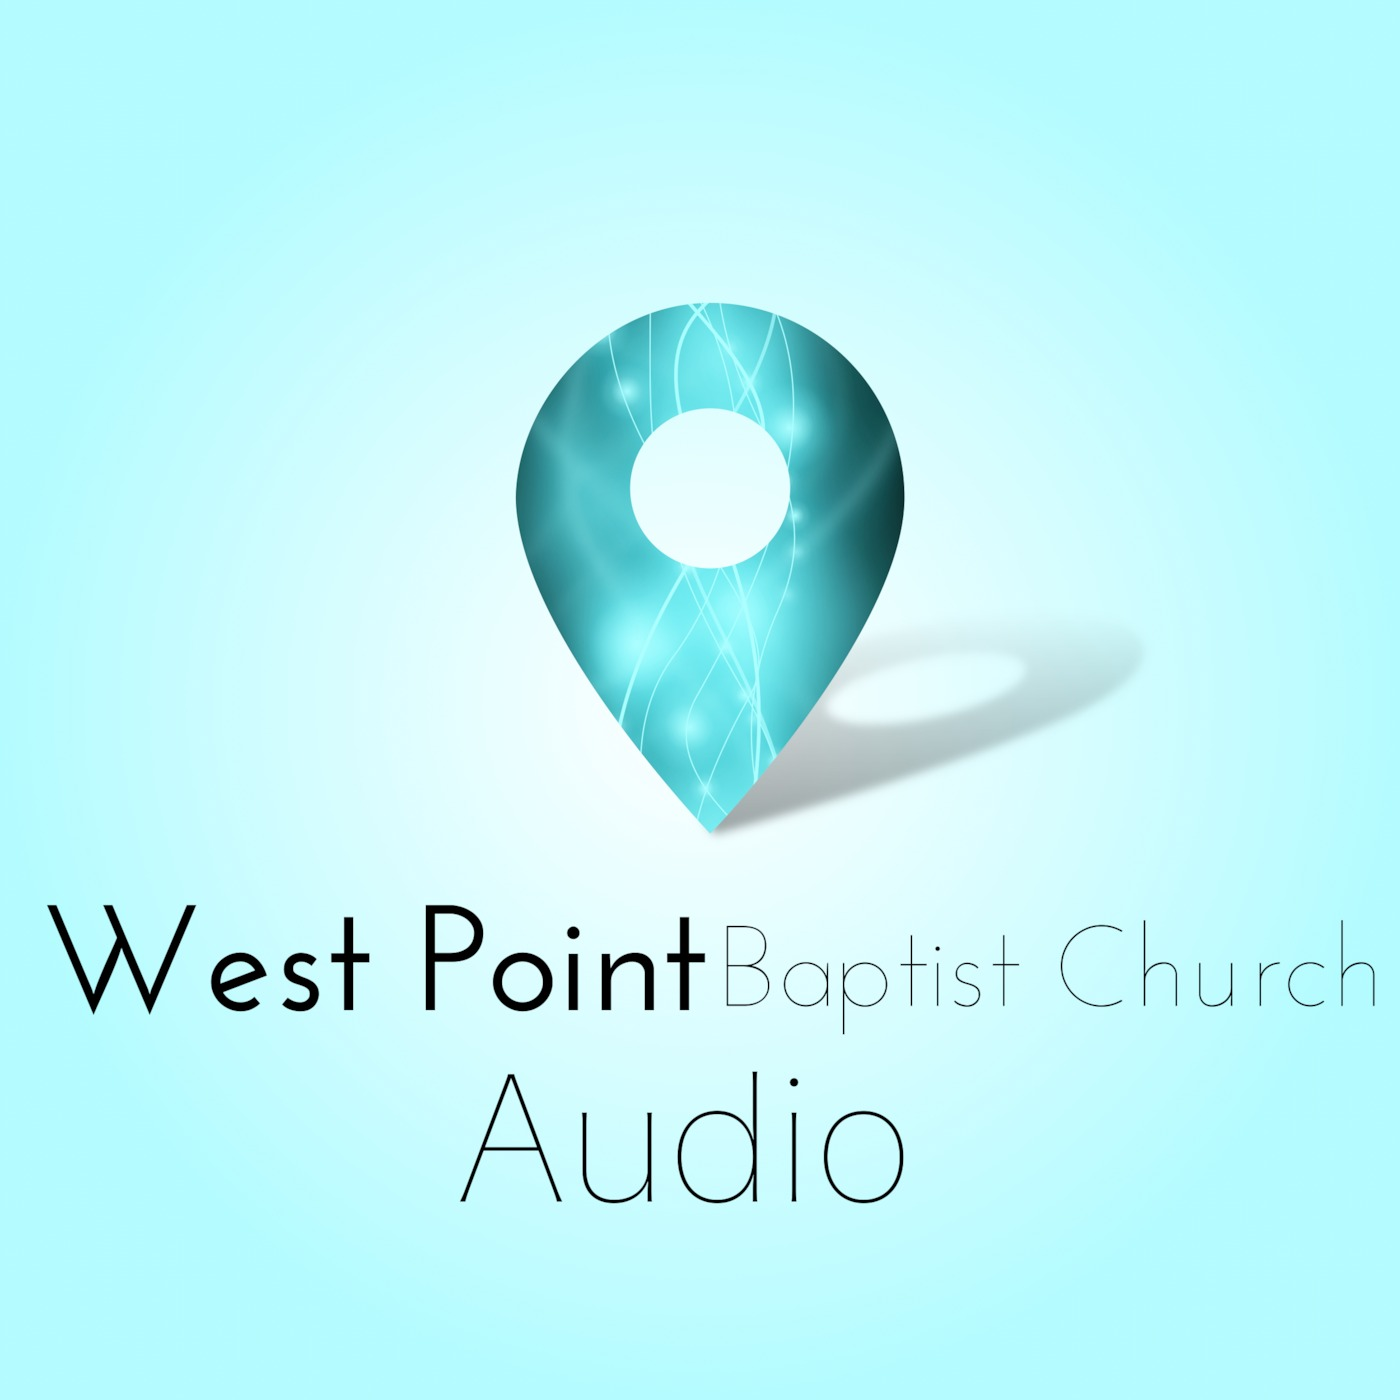 West Point Baptist Church Audio Podcast